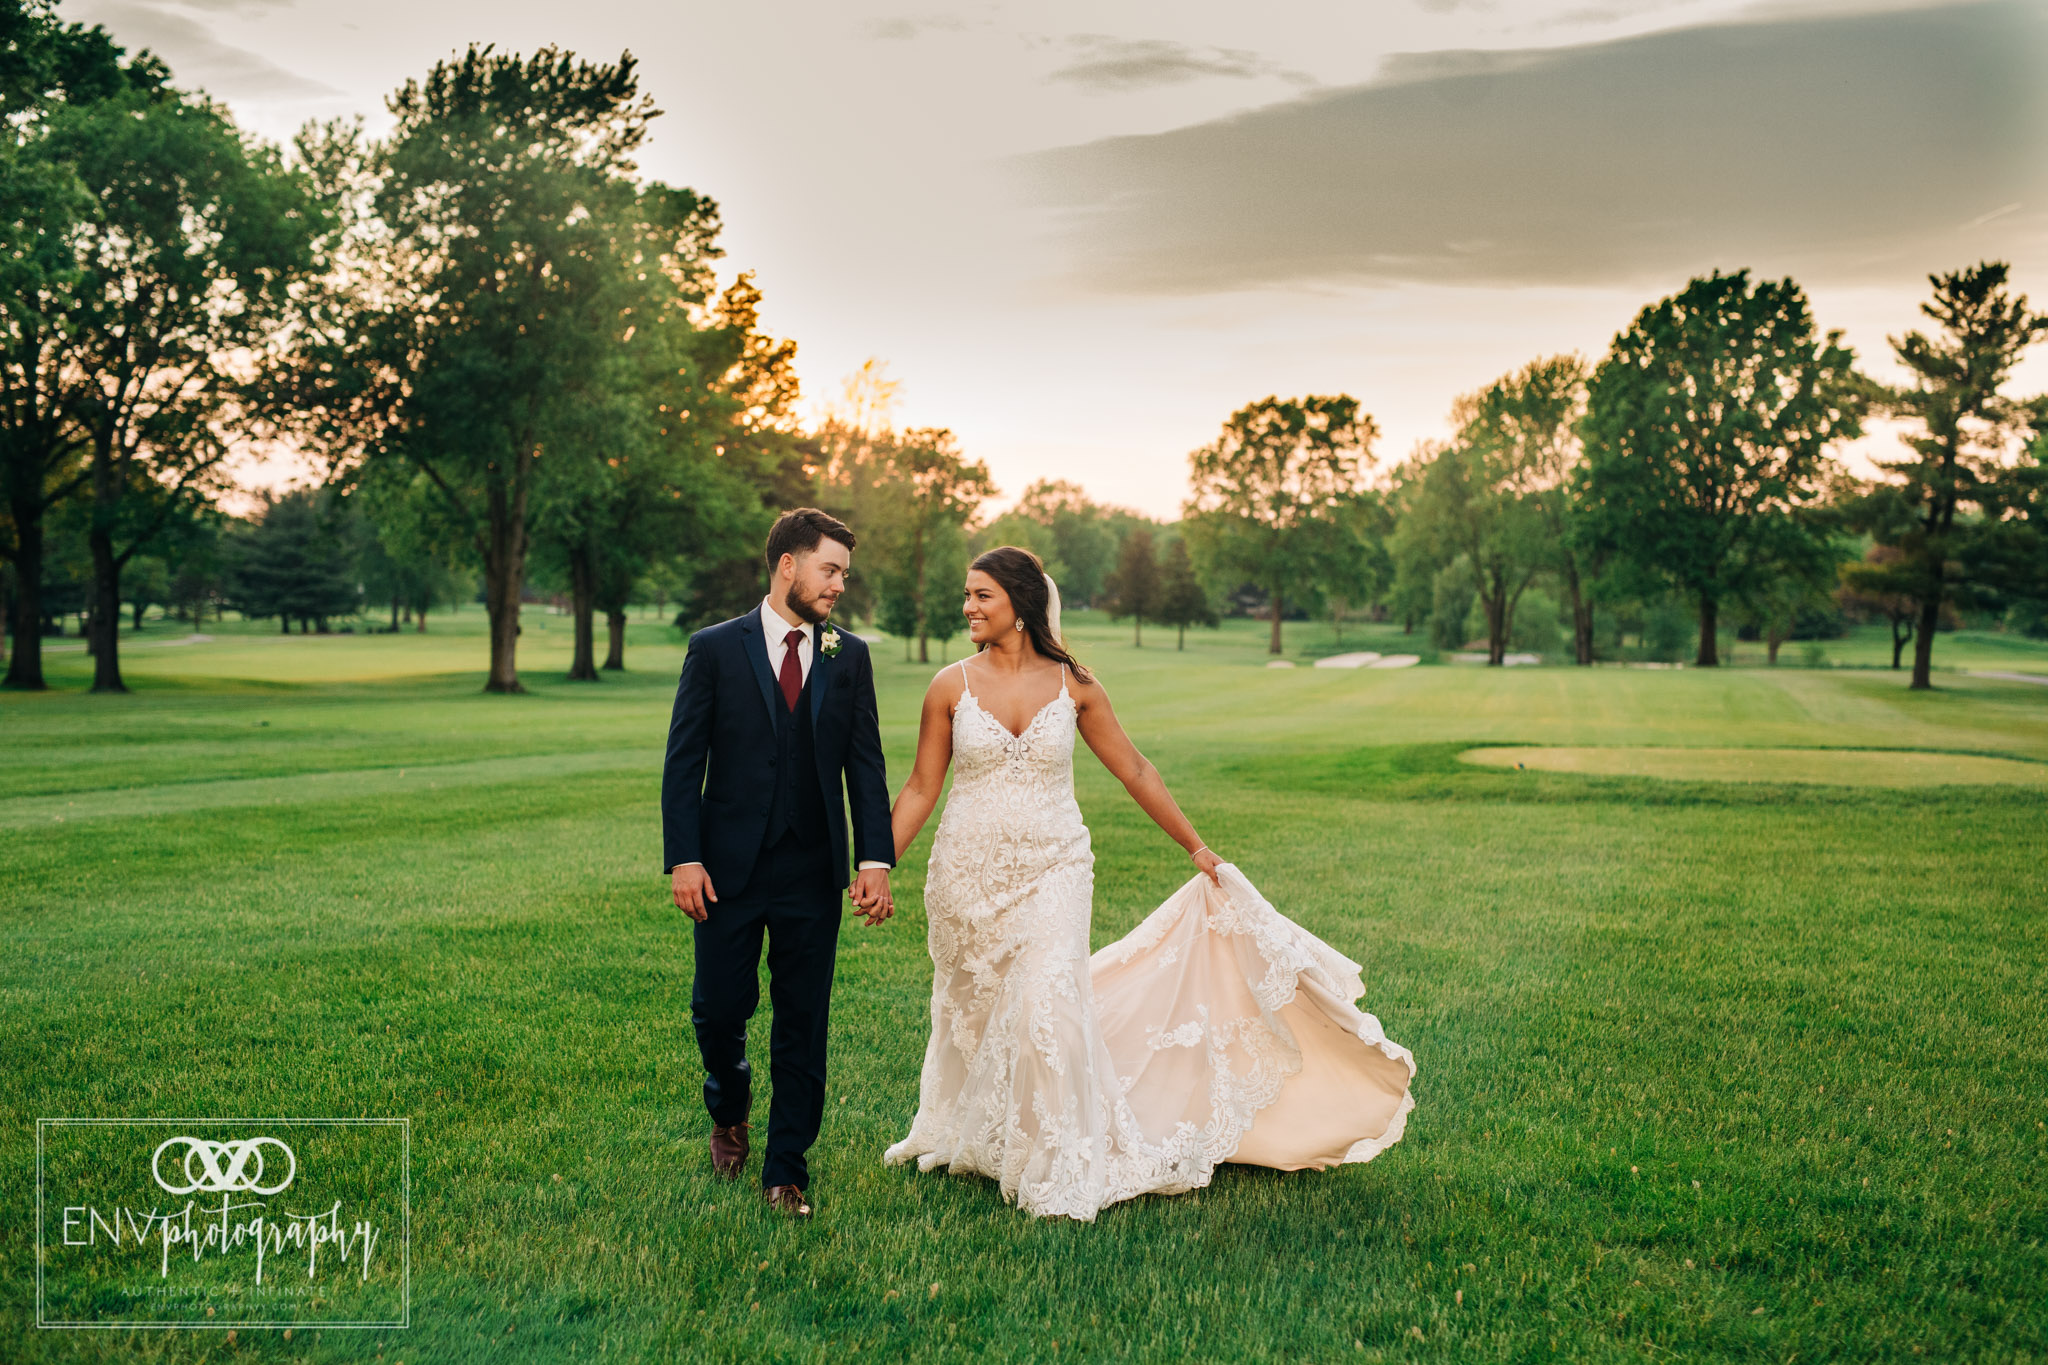 worthington hills country club columbus ohio wedding (10).jpg